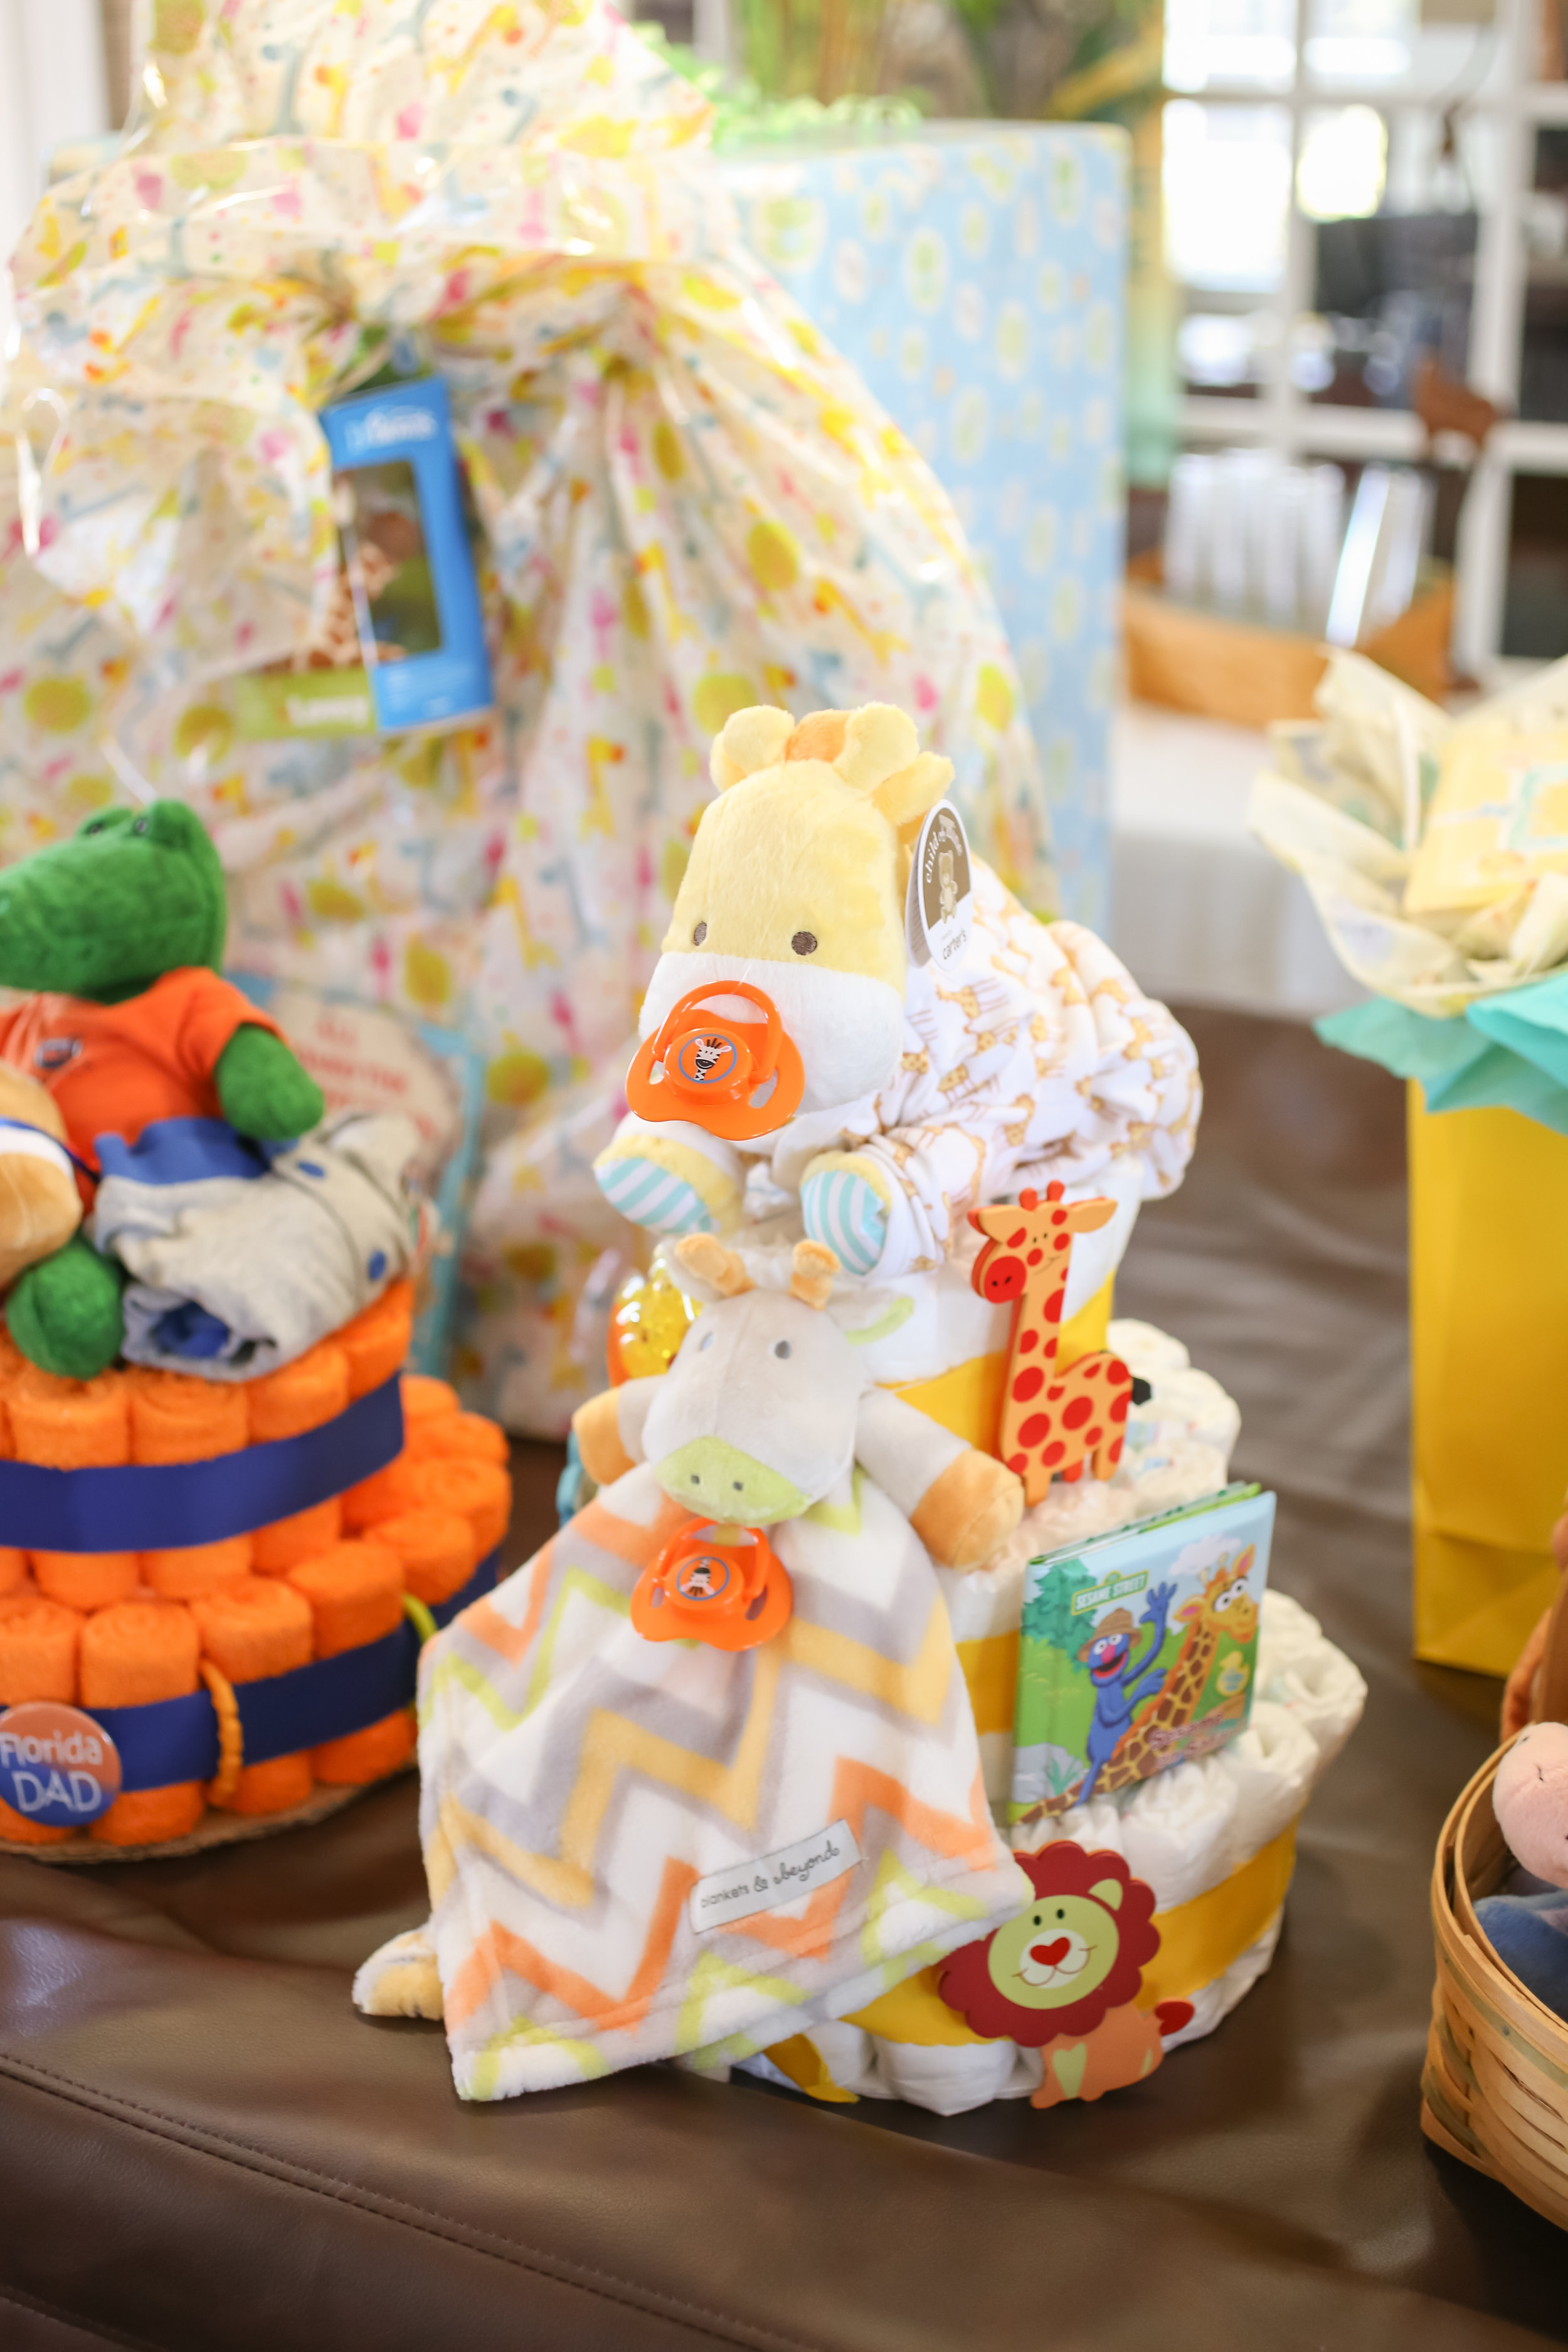 Even the diaper cakes incorporated the jungle theme!